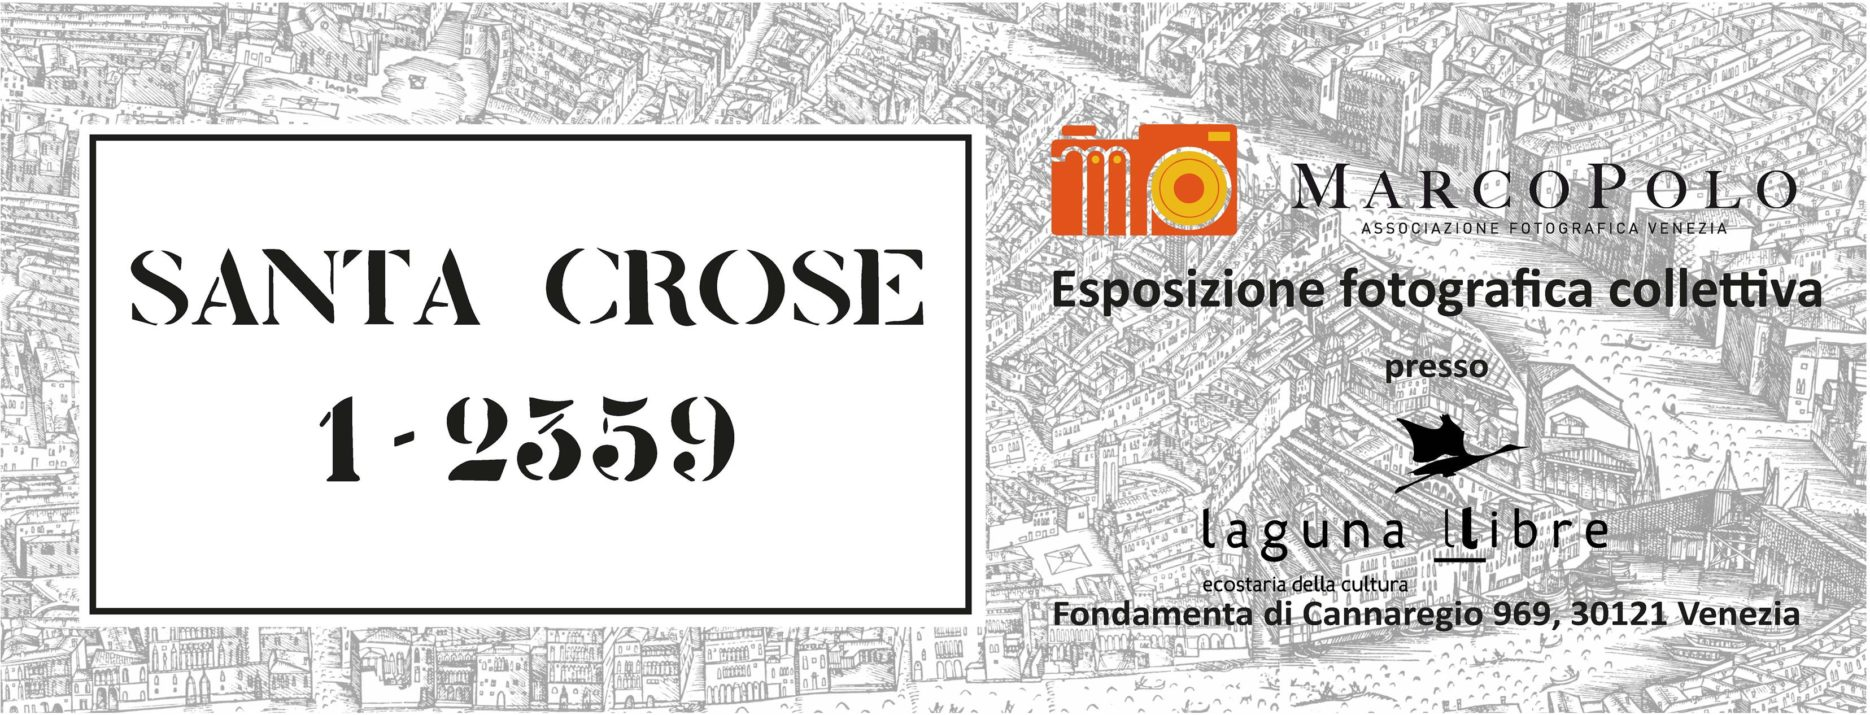 Santa Crose 1-2359 - Vernissage Laguna Libre